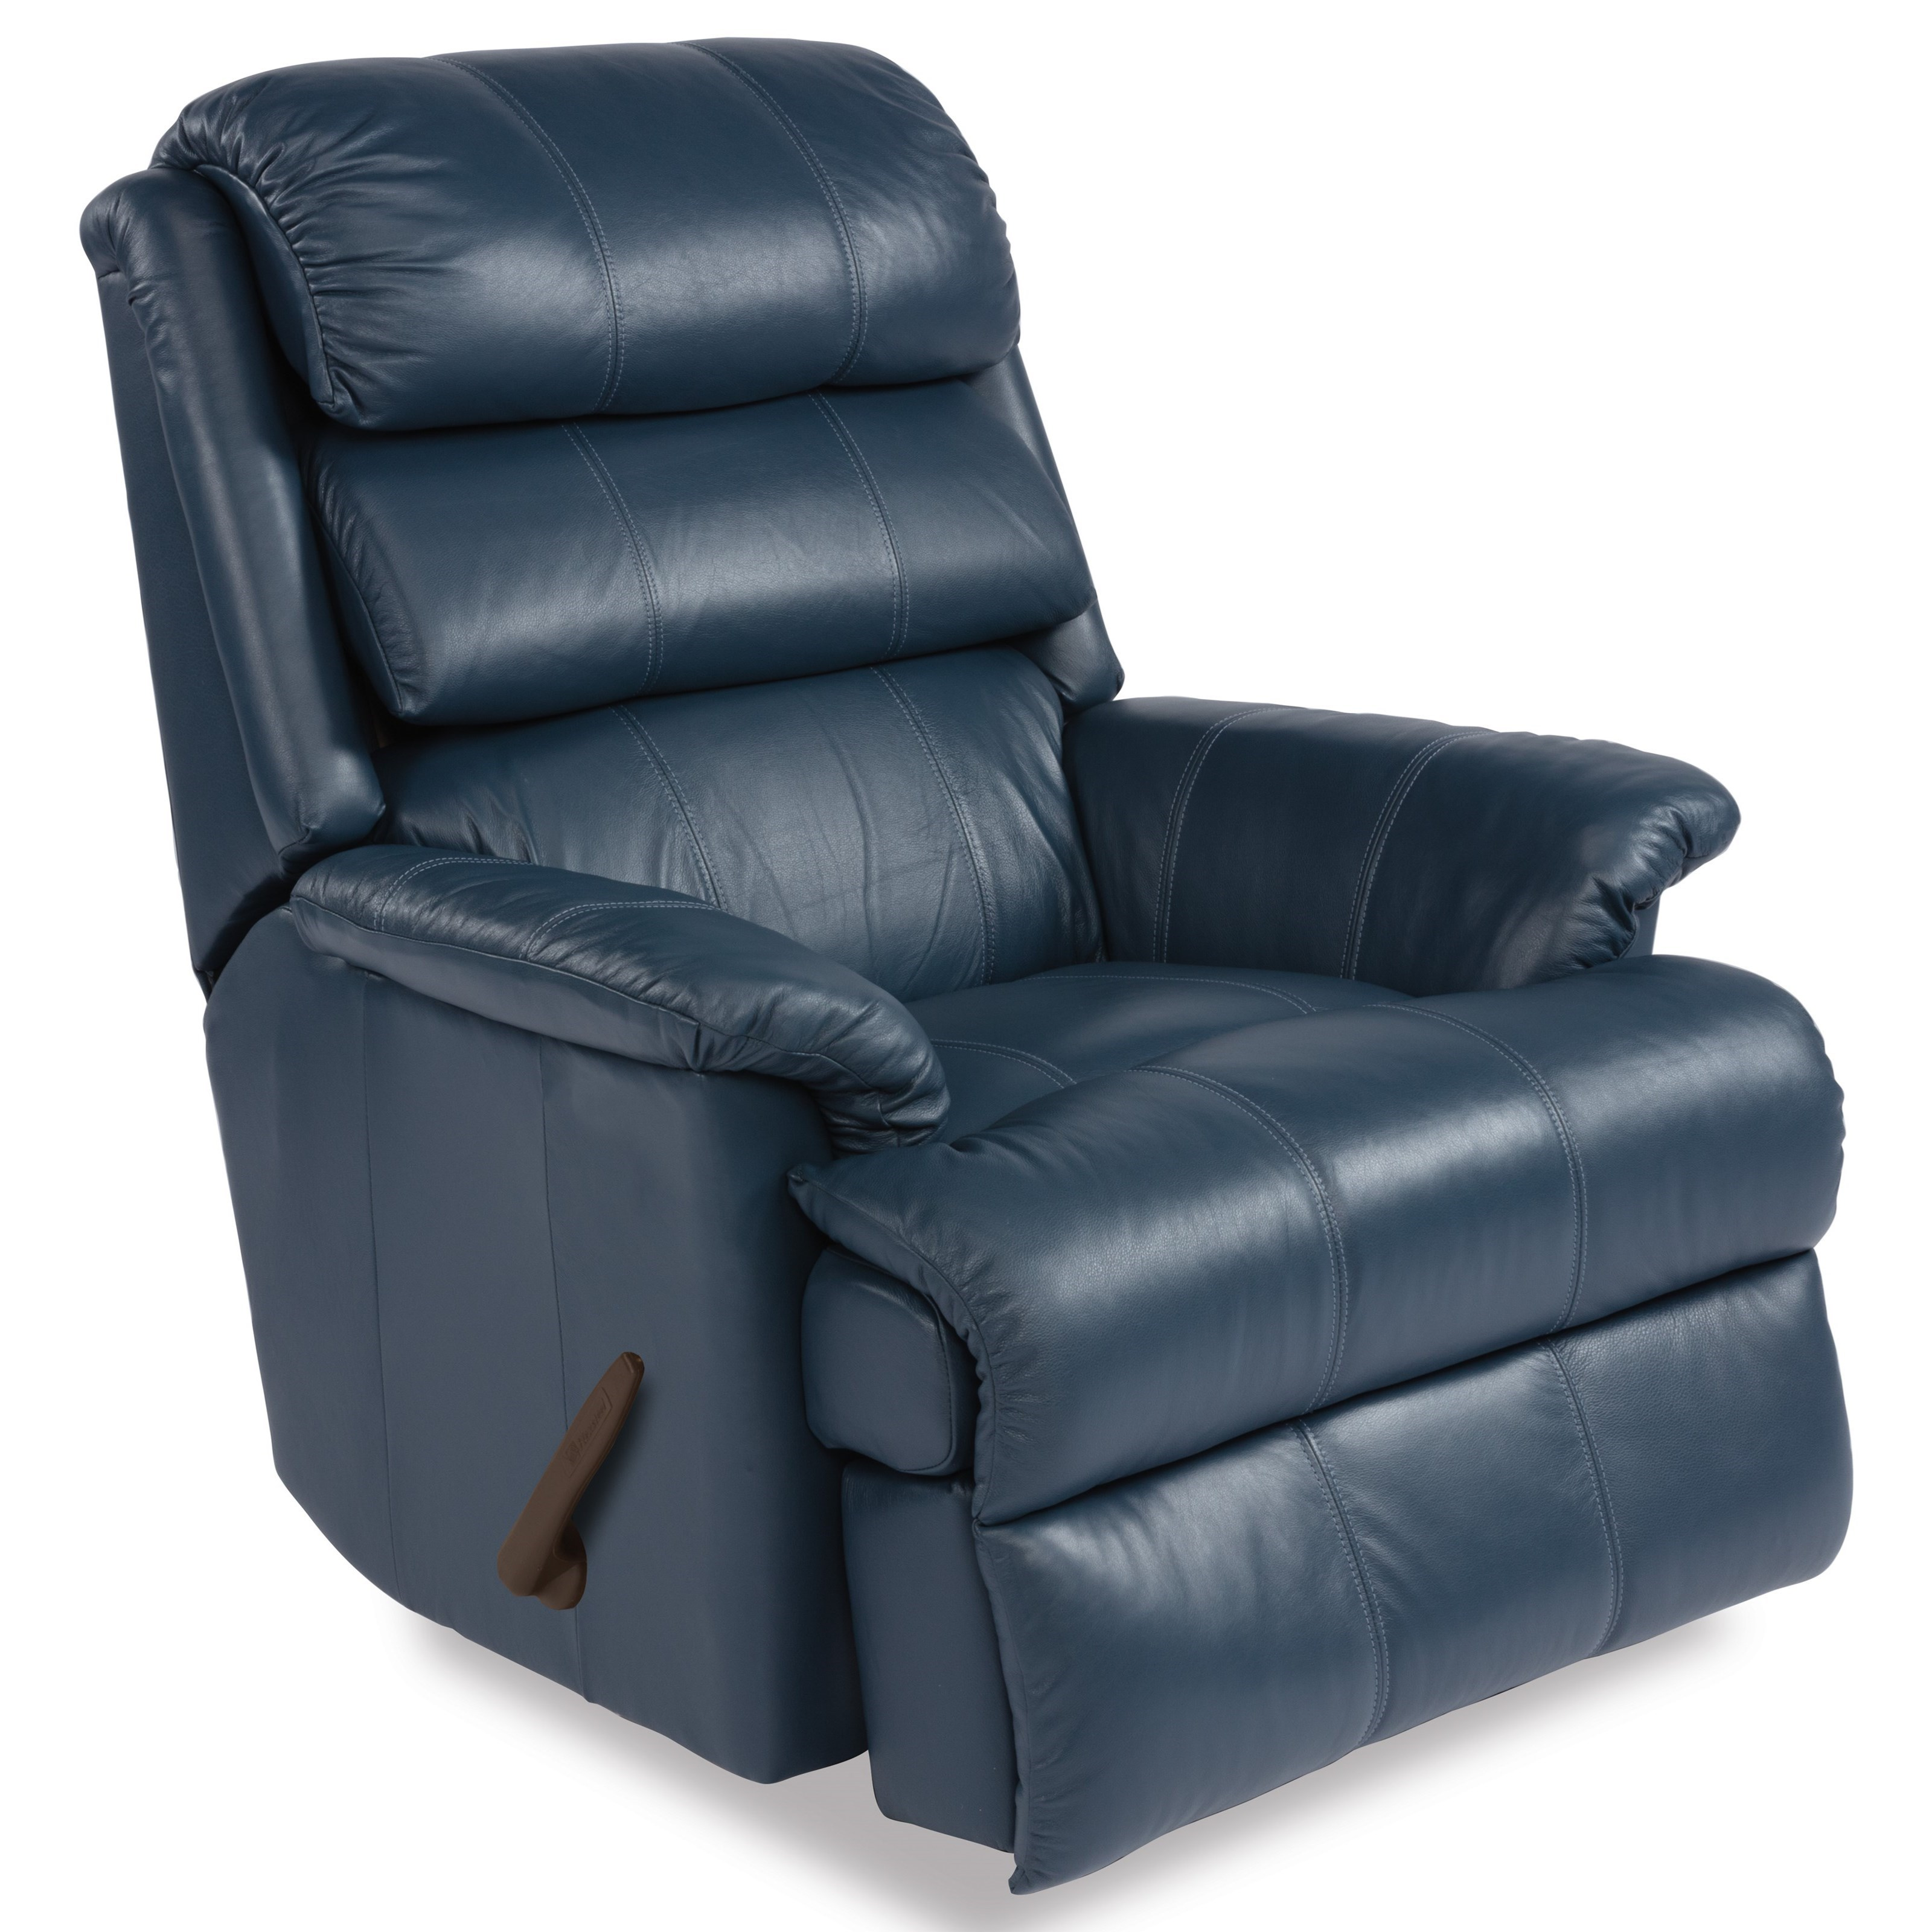 Yukon Recliner by Flexsteel at Westrich Furniture & Appliances